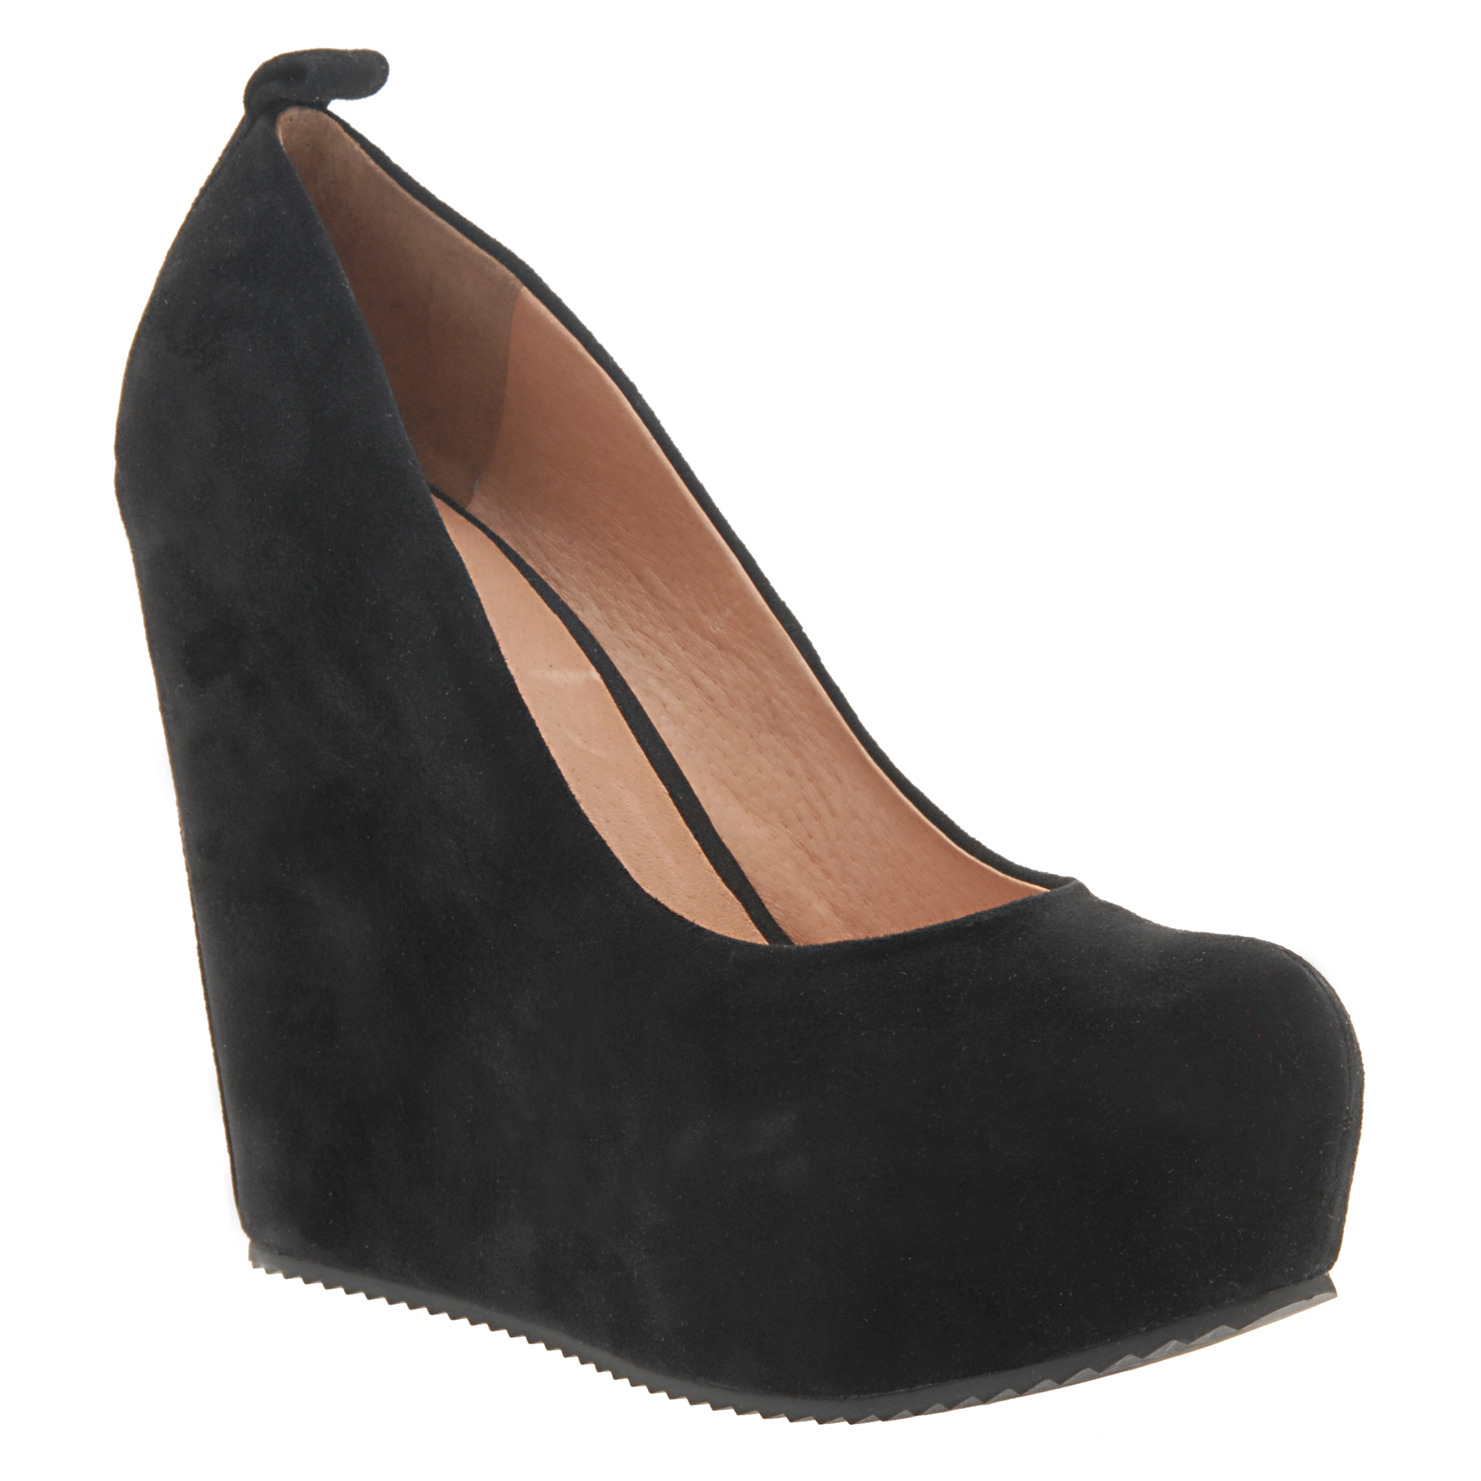 the greatest shoe on earth wedges for fall